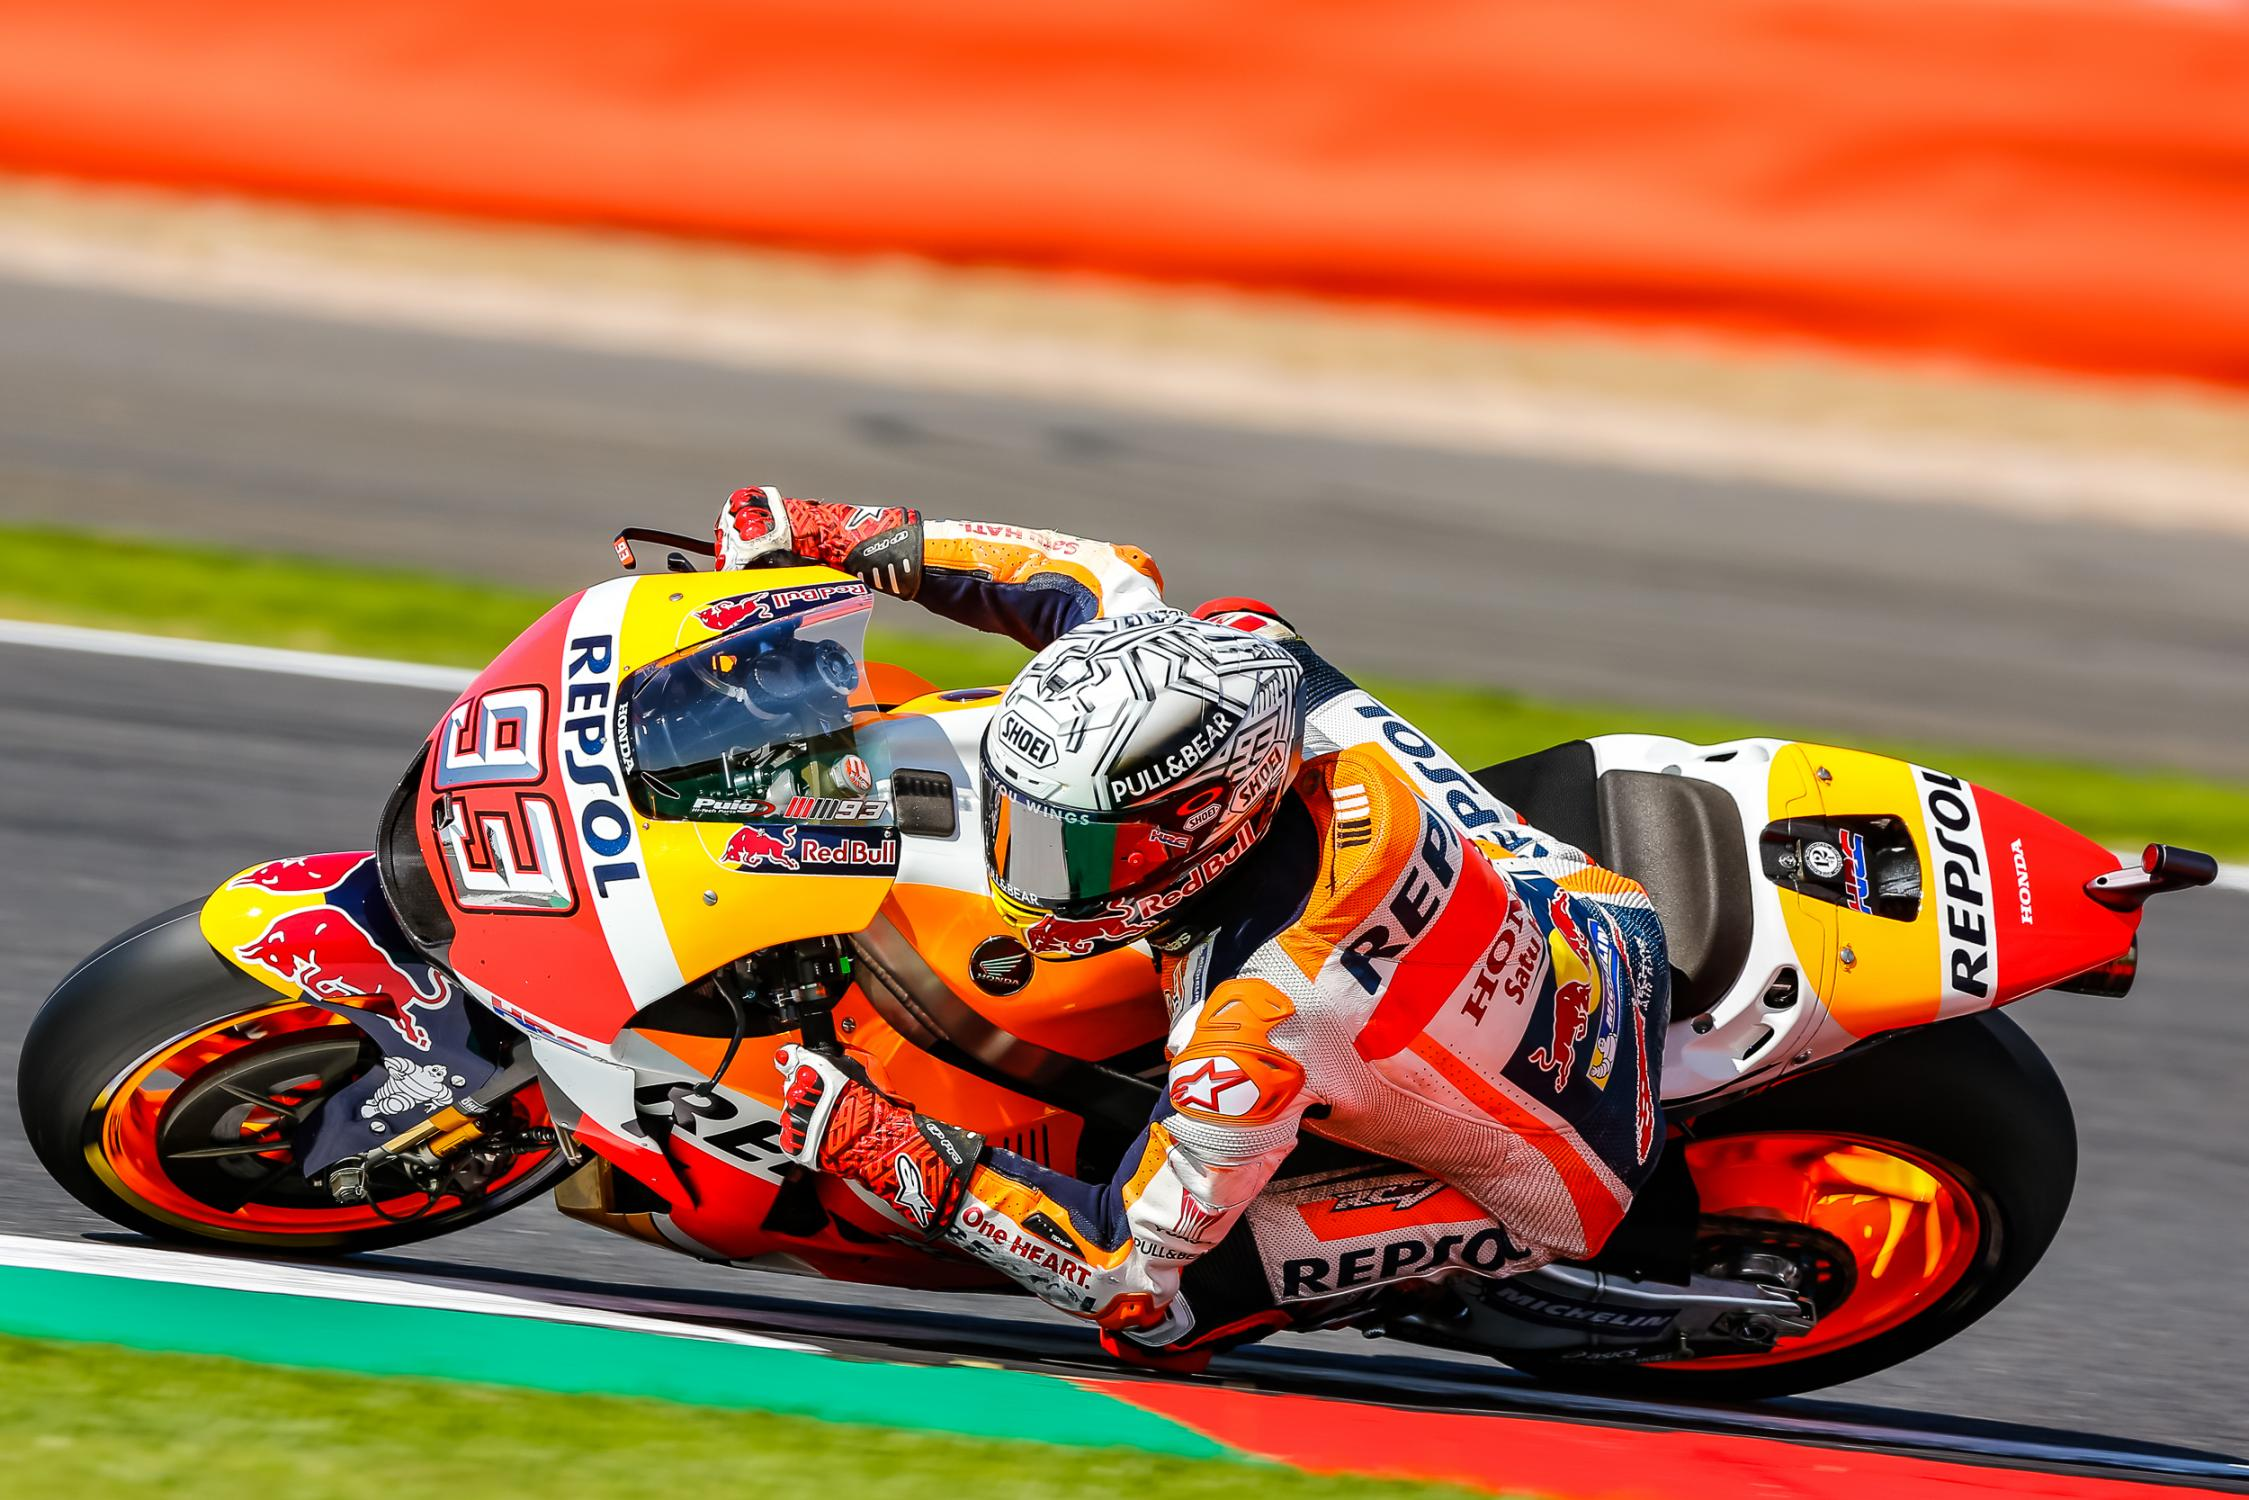 93-marc-marquez-esp_gp_4235.gallery_full_top_fullscreen.jpg